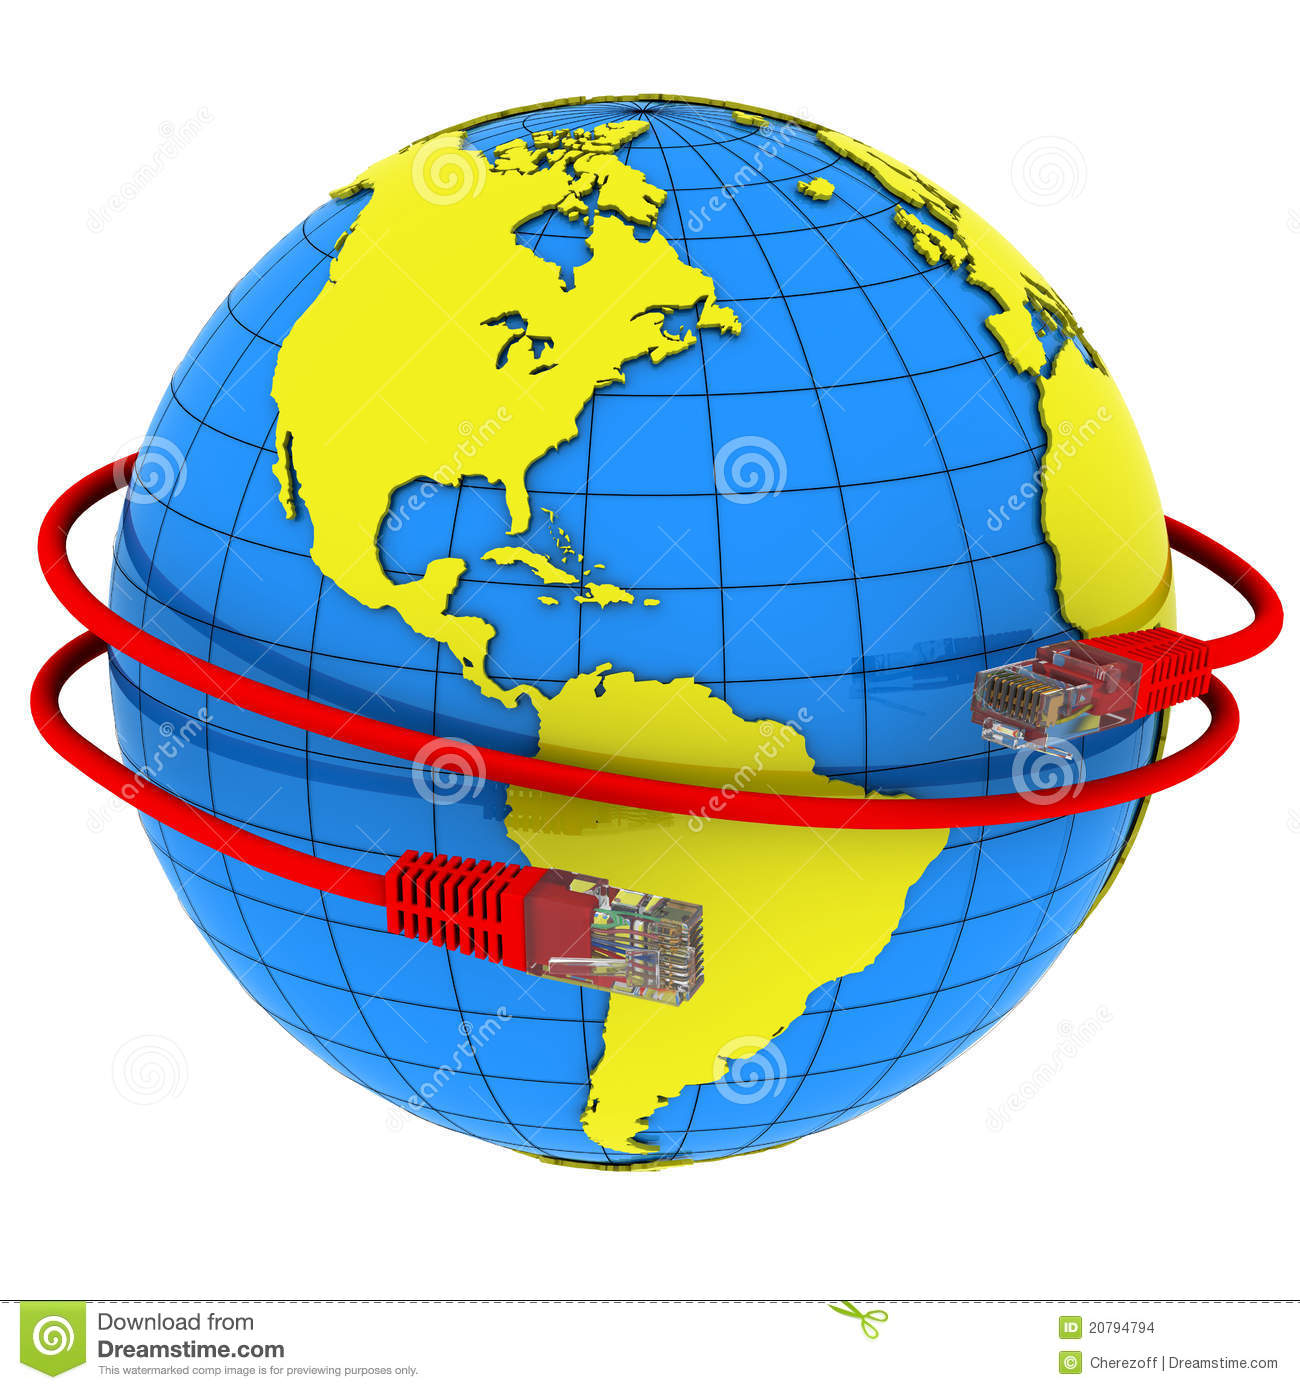 Red internet cable wraps around the planet earth stock for Internet plante